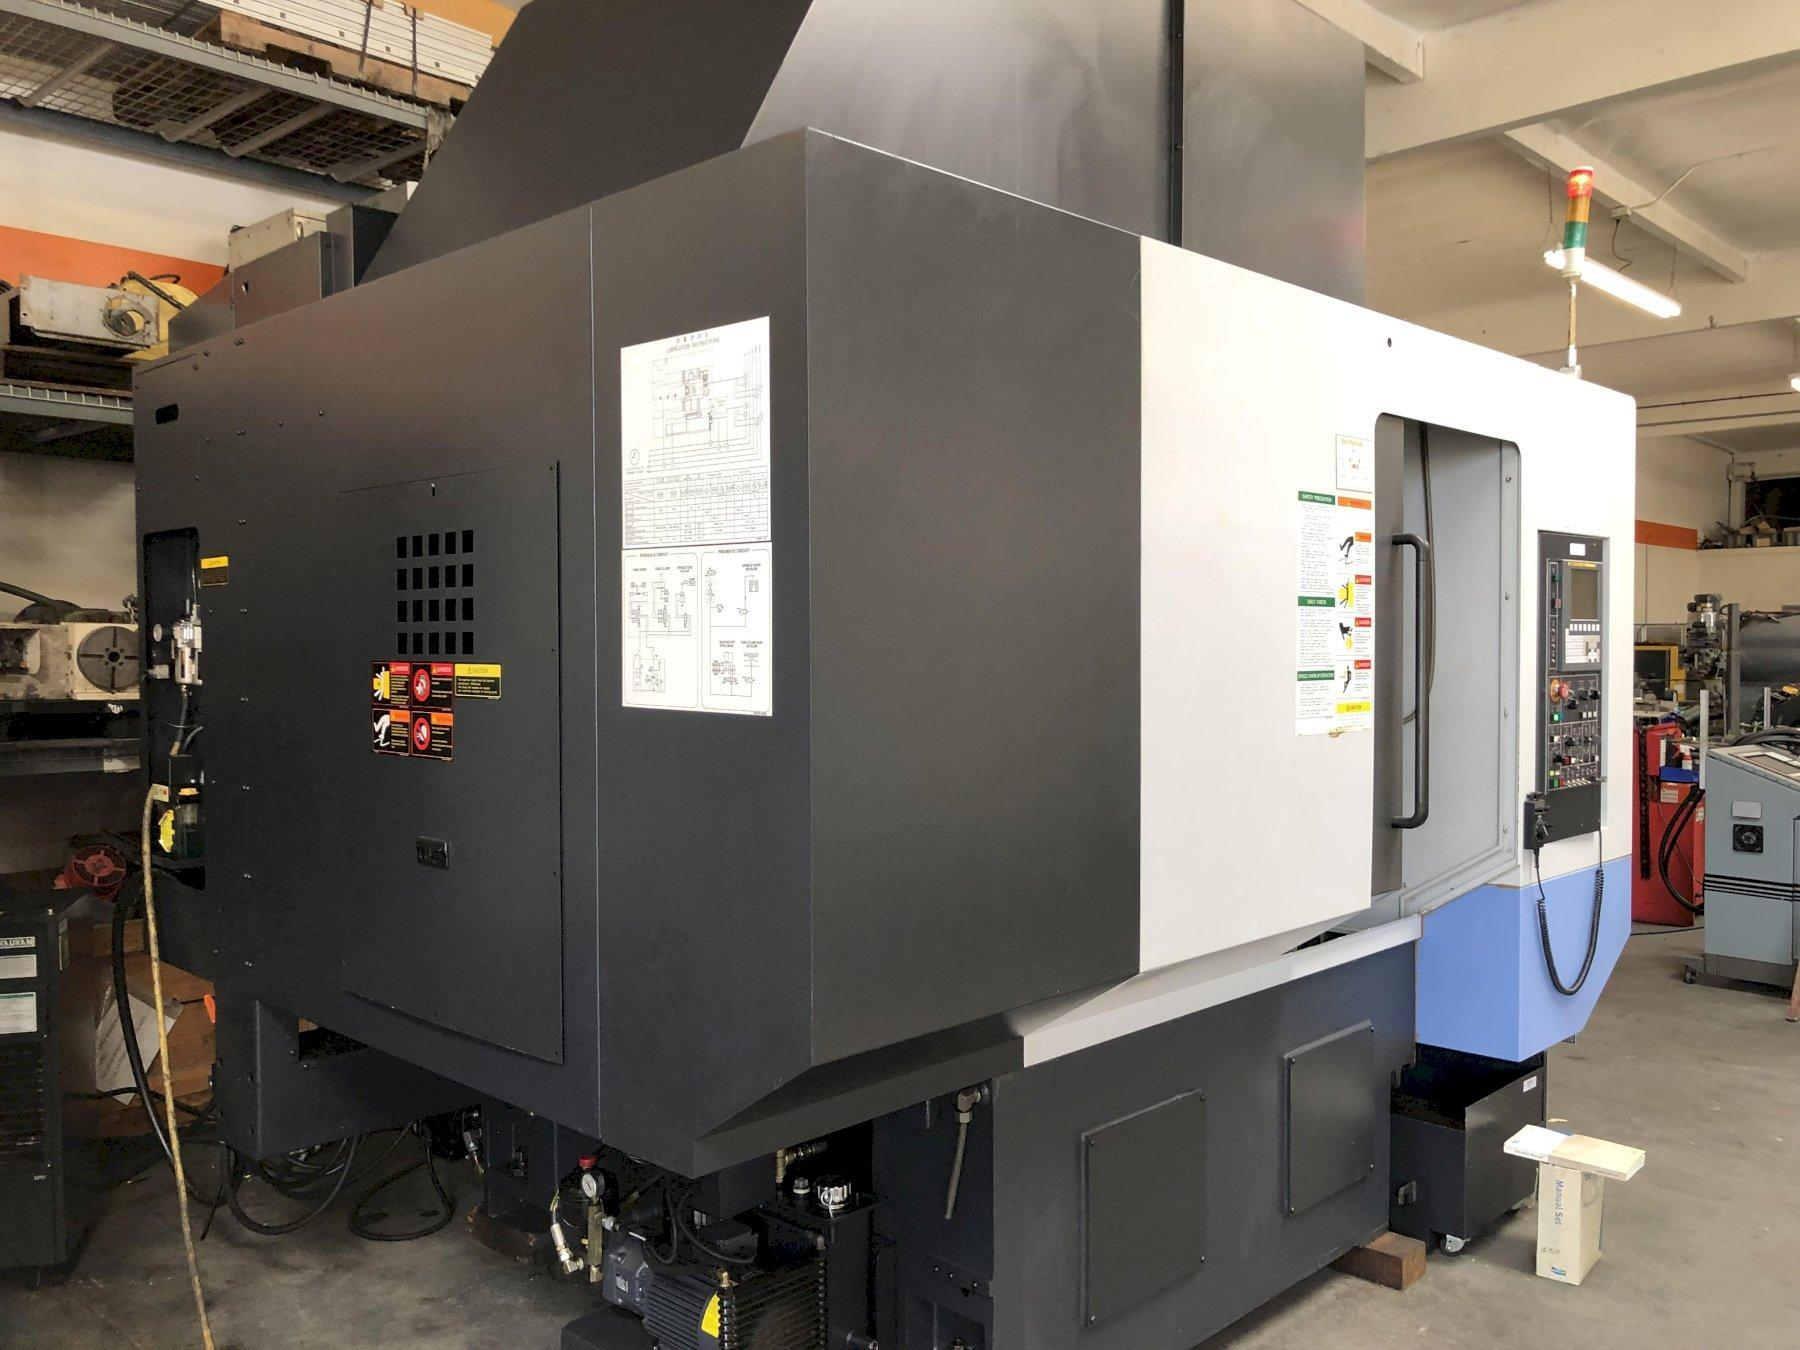 Doosan VC 510 VMC 2012 with: Pallet Changer, Fanuc i Series CNC Control, Probing, Through Spindle Coolant, and LNS Turbo Chip Conveyor.